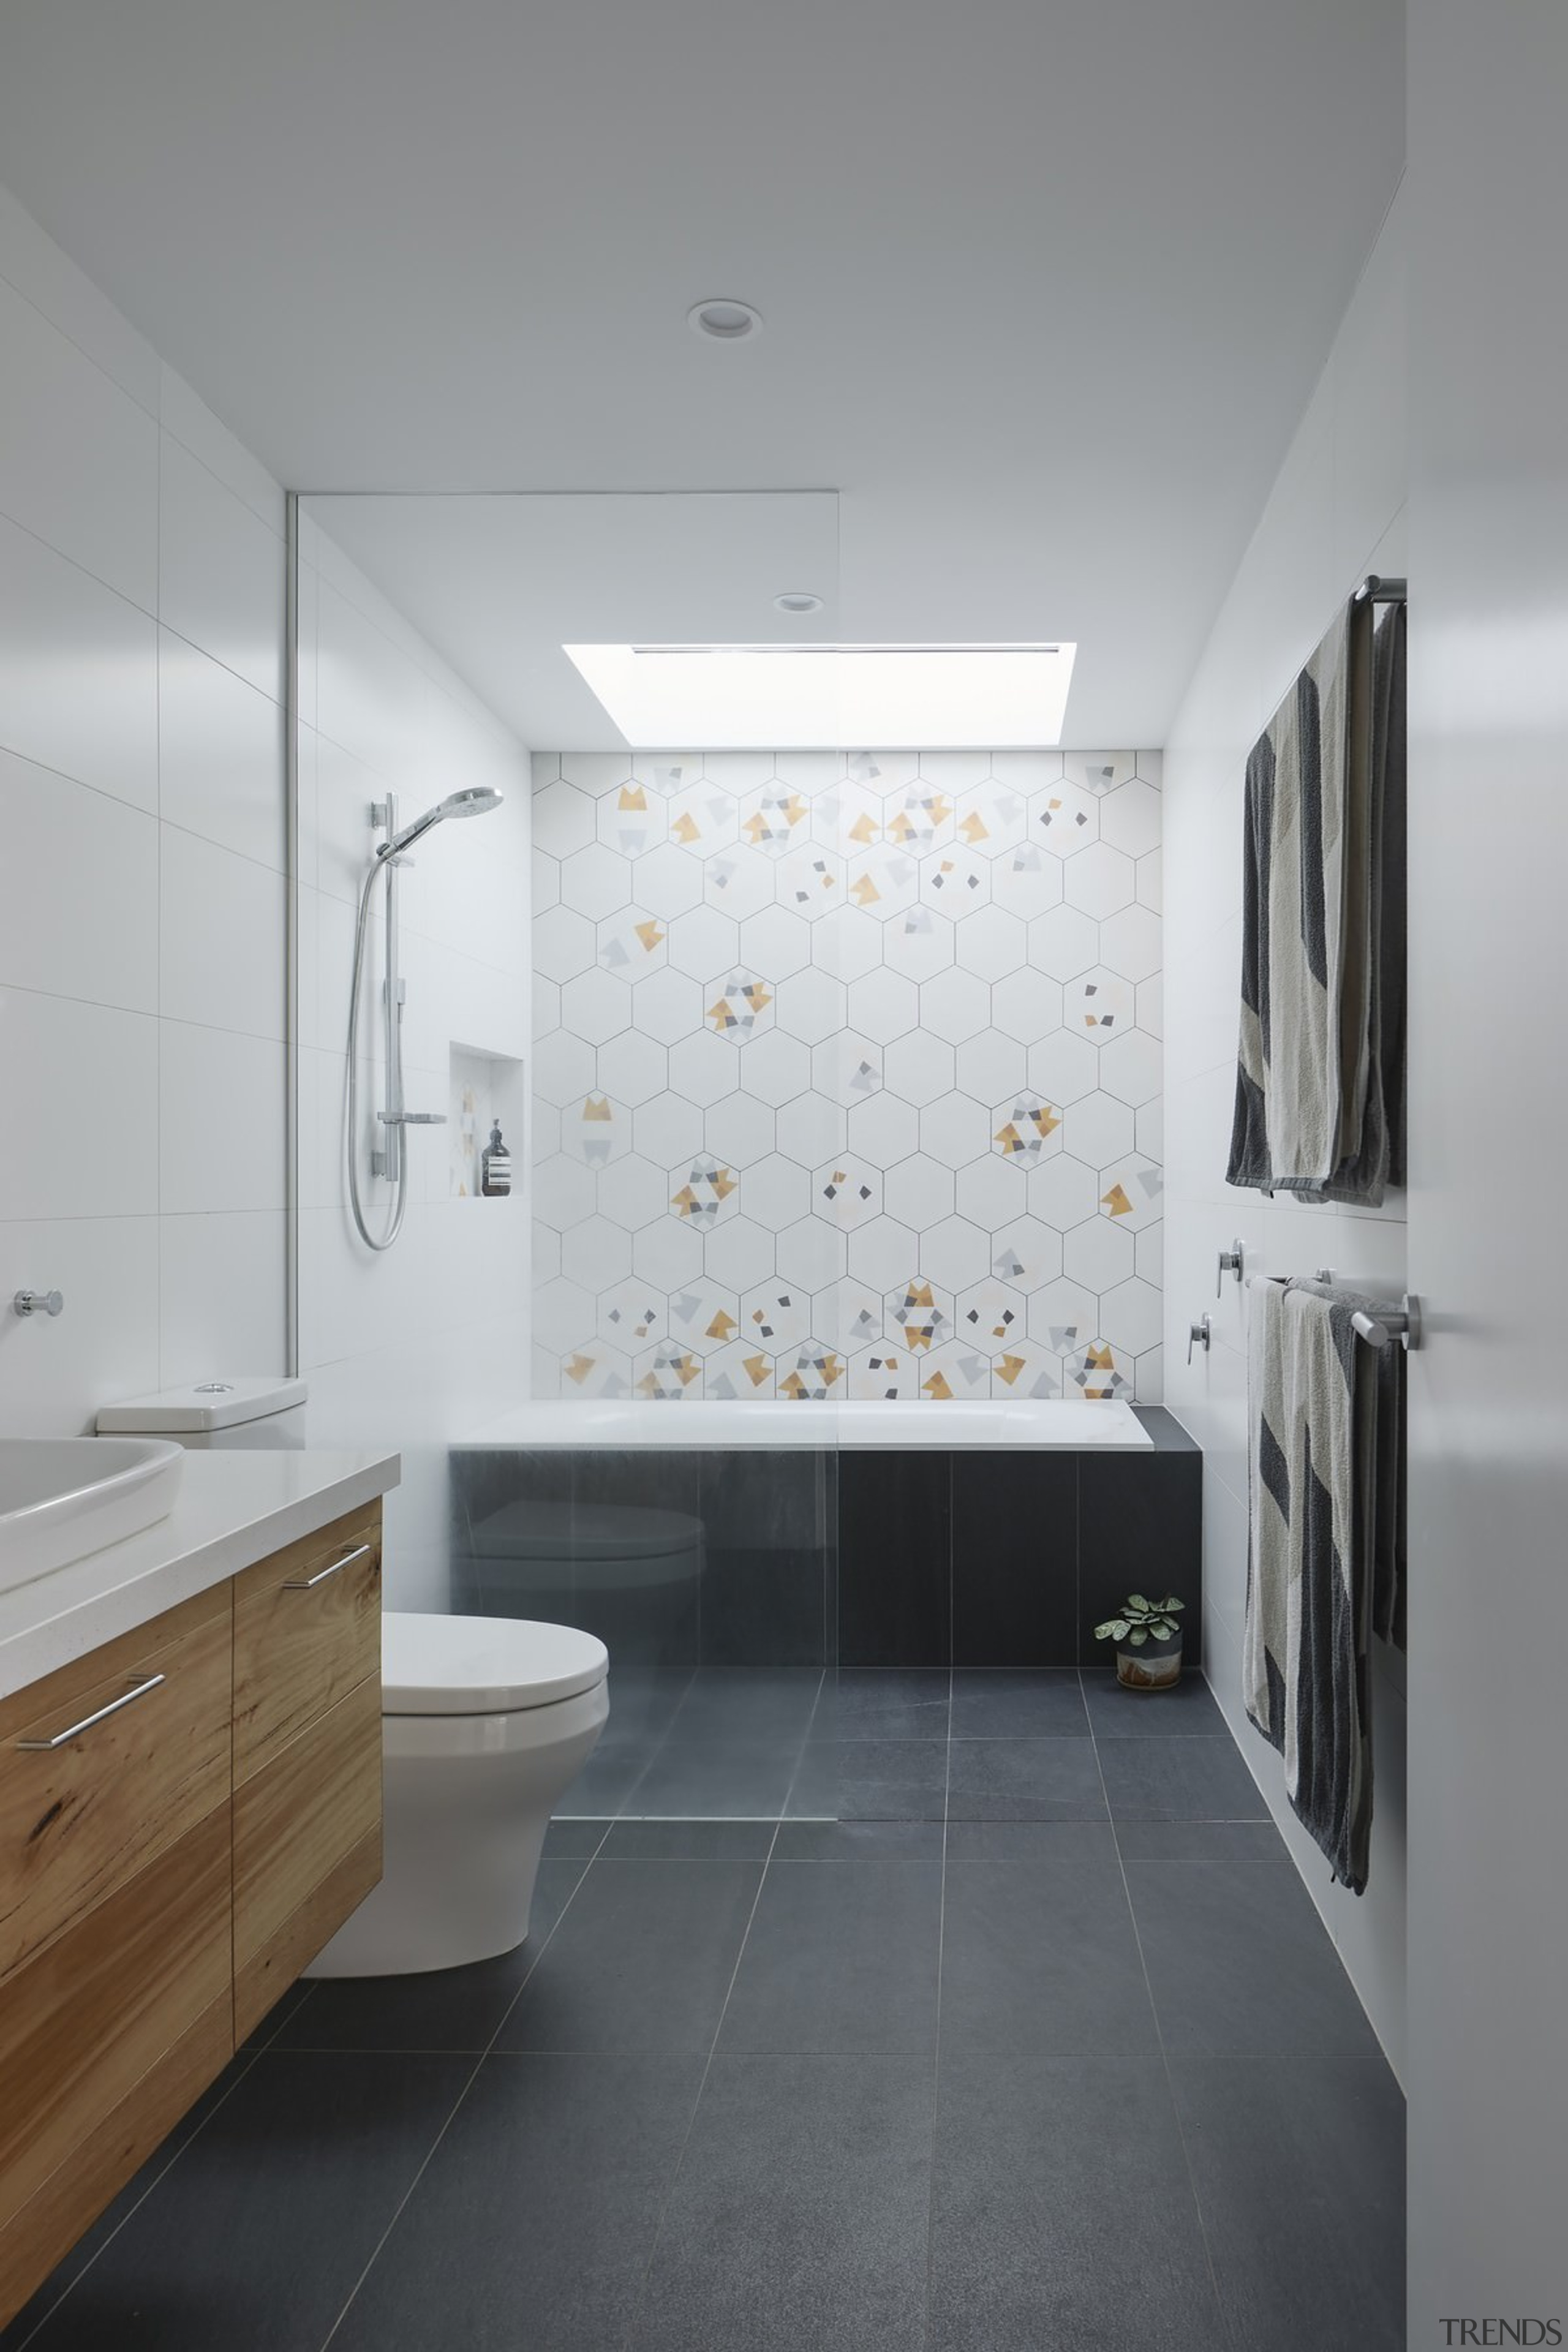 The bathroom features a large wet area - architecture, bathroom, bathroom accessory, bathroom cabinet, ceiling, daylighting, floor, flooring, interior design, product design, room, sink, tile, wall, gray